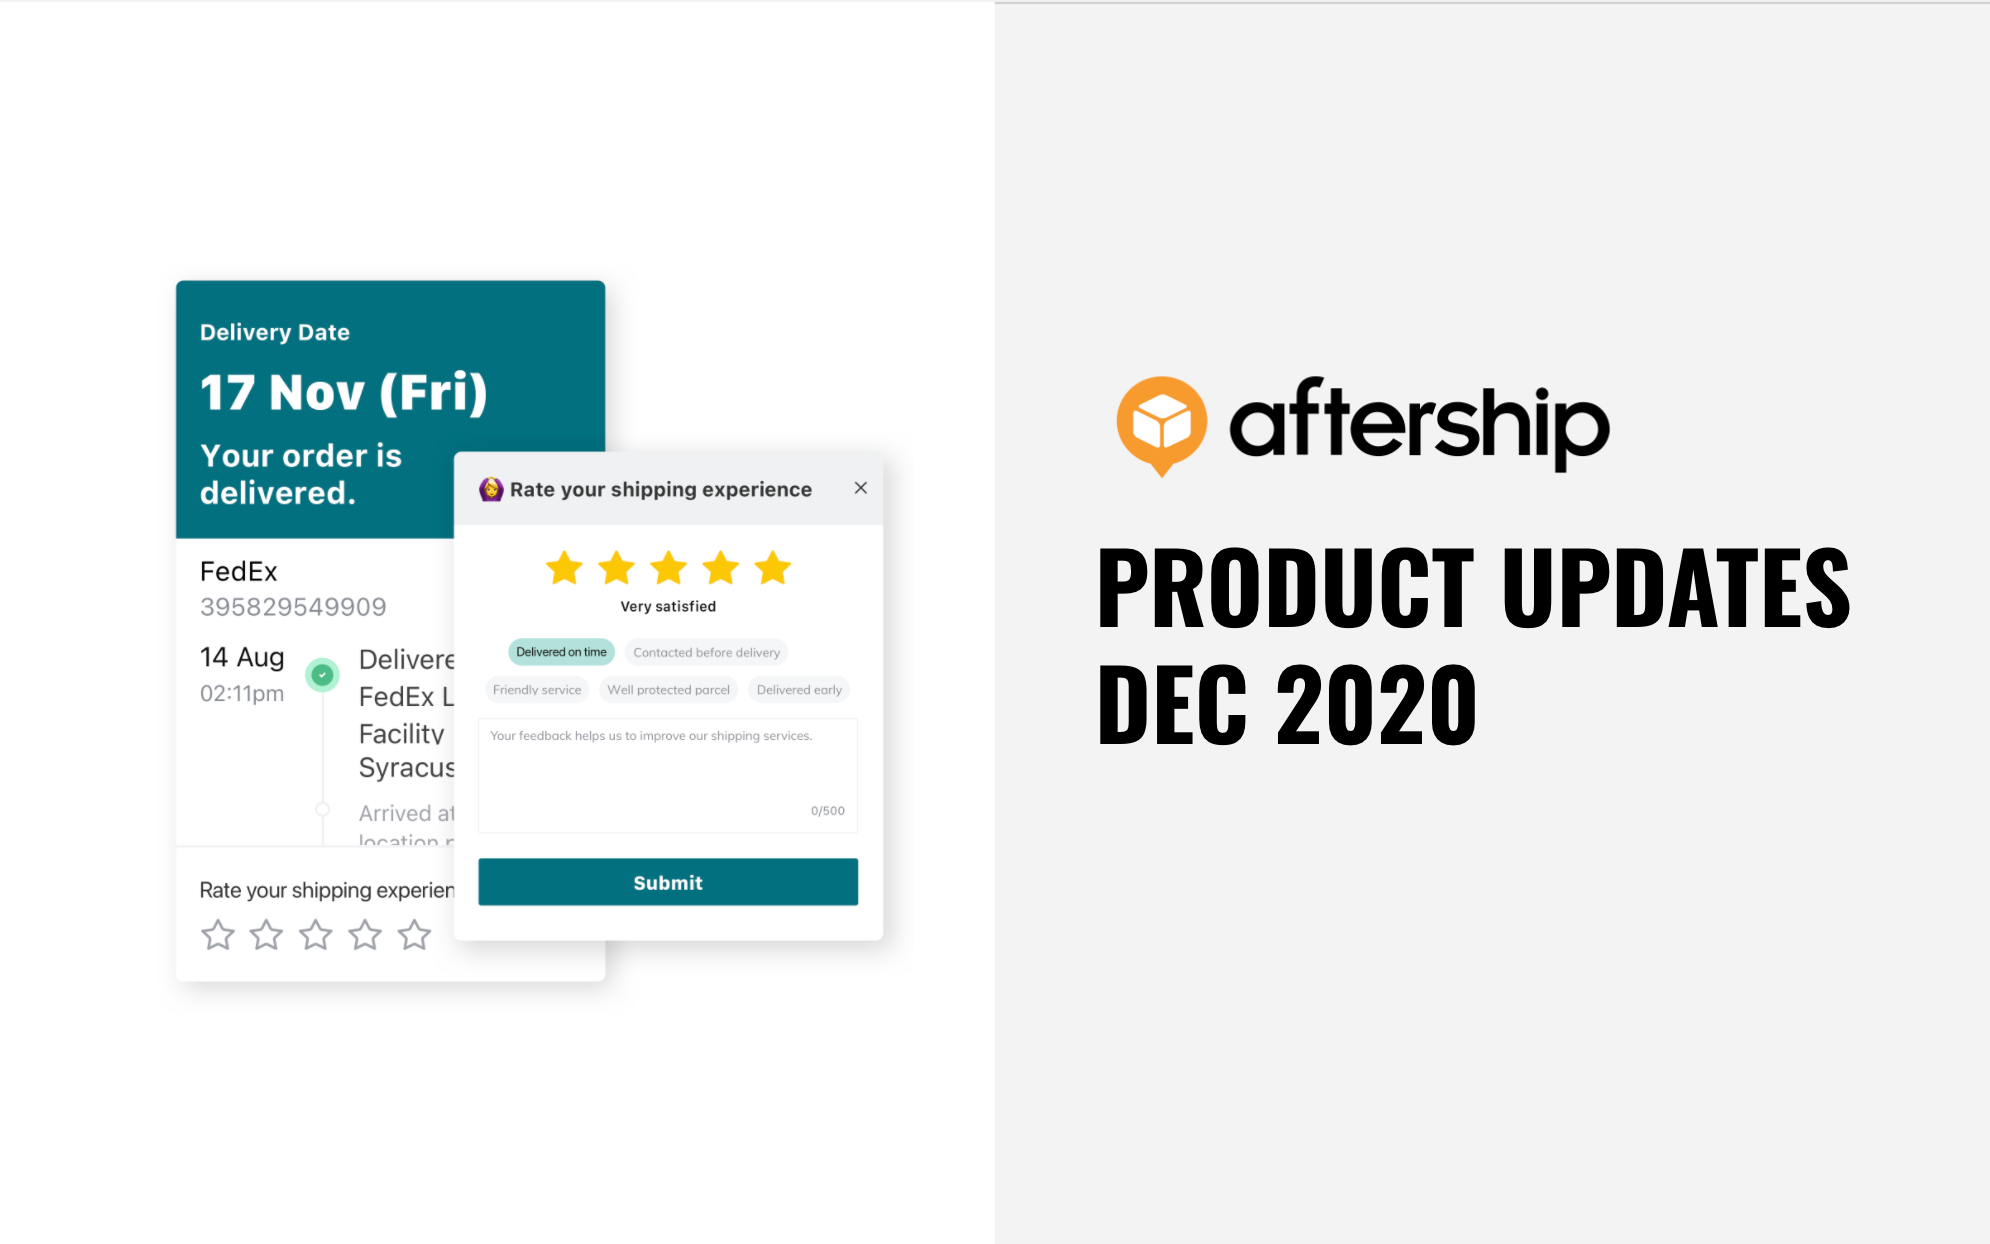 AfterShip new features: Customer reviews, mobile tracking app and more